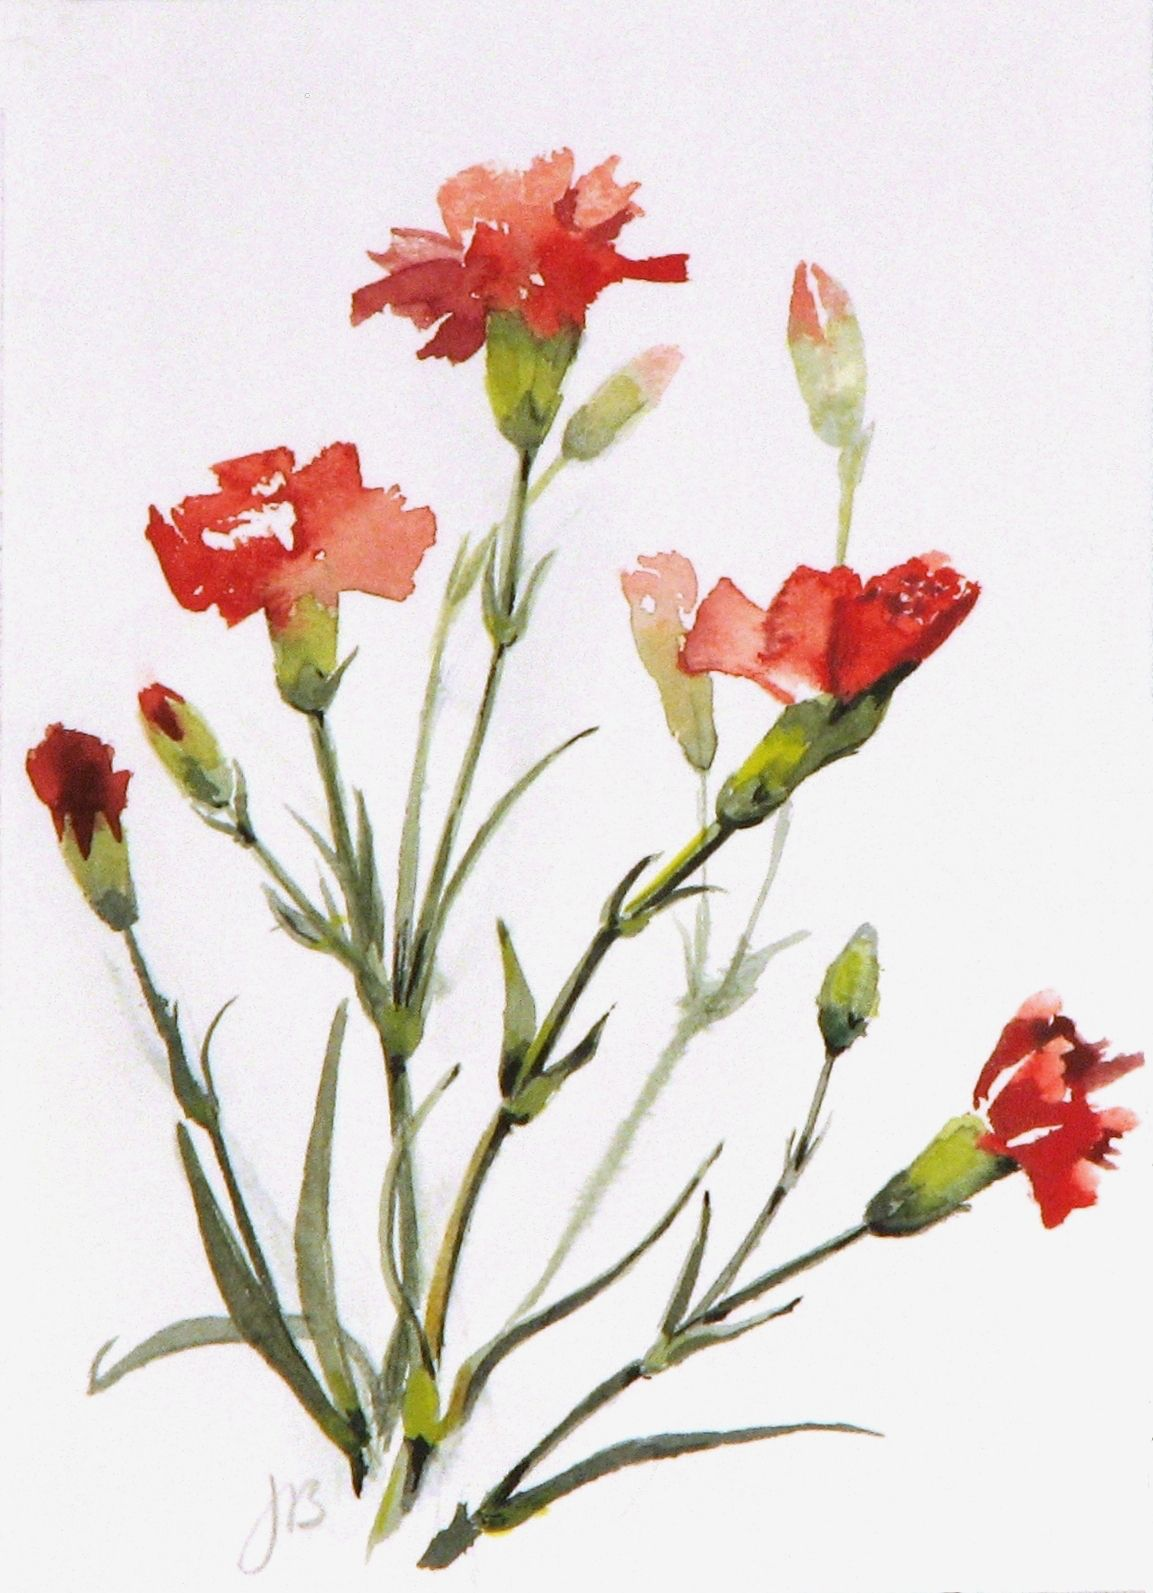 Image From Http Www Cl Cam Ac Uk Km10 Jmb Expo Data Jmb Paintings 2005 7271 Carnations And Buds Jpg Floral Watercolor Flower Painting Watercolor Flowers